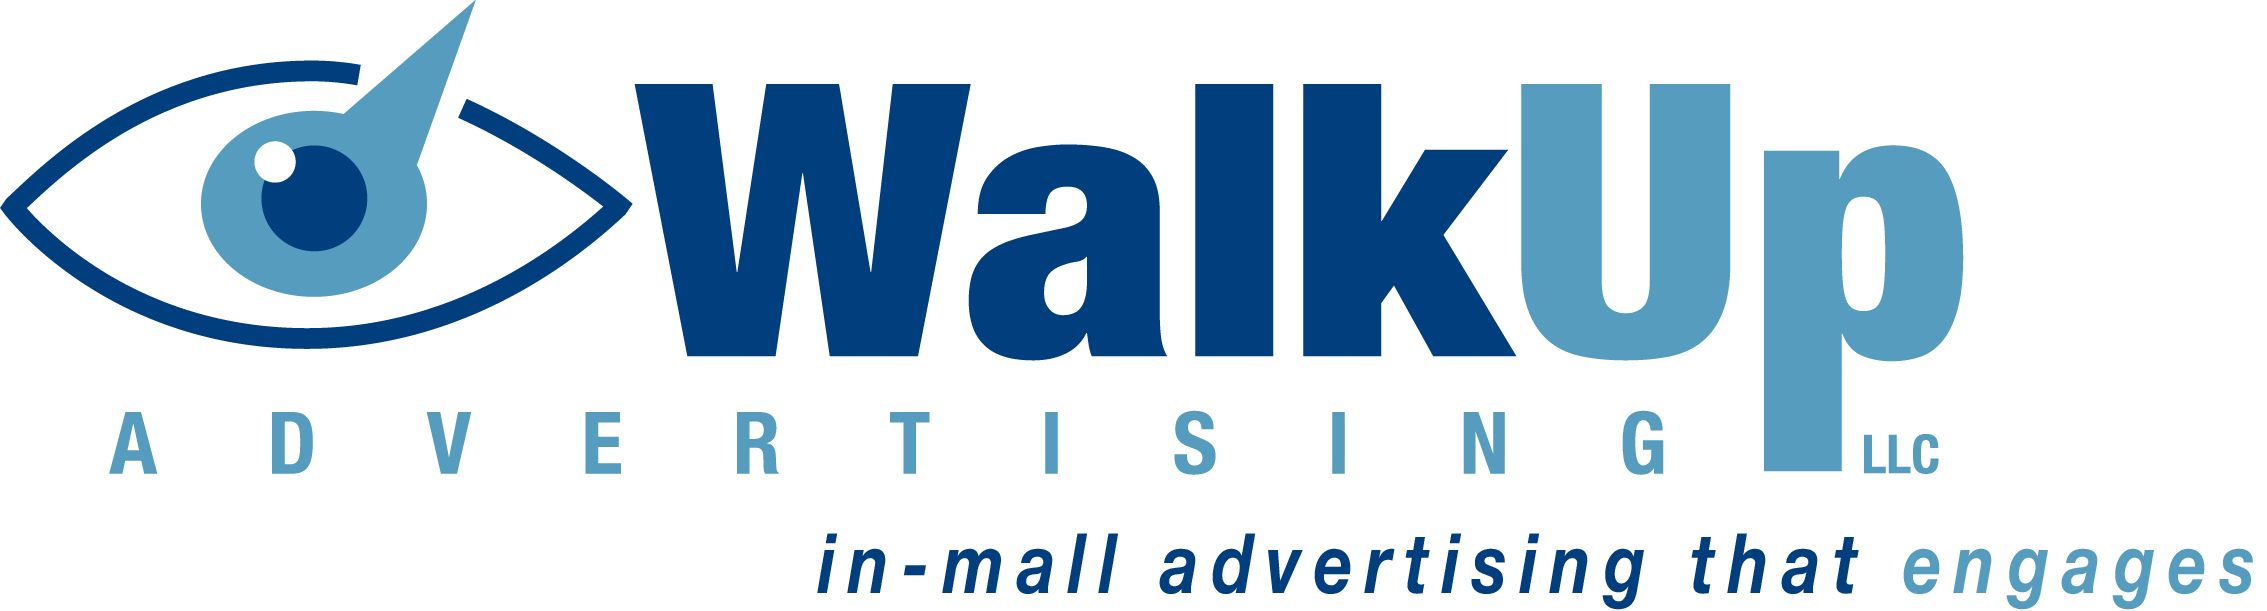 FINAL WALK UP LOGO HORIZONTAL.png